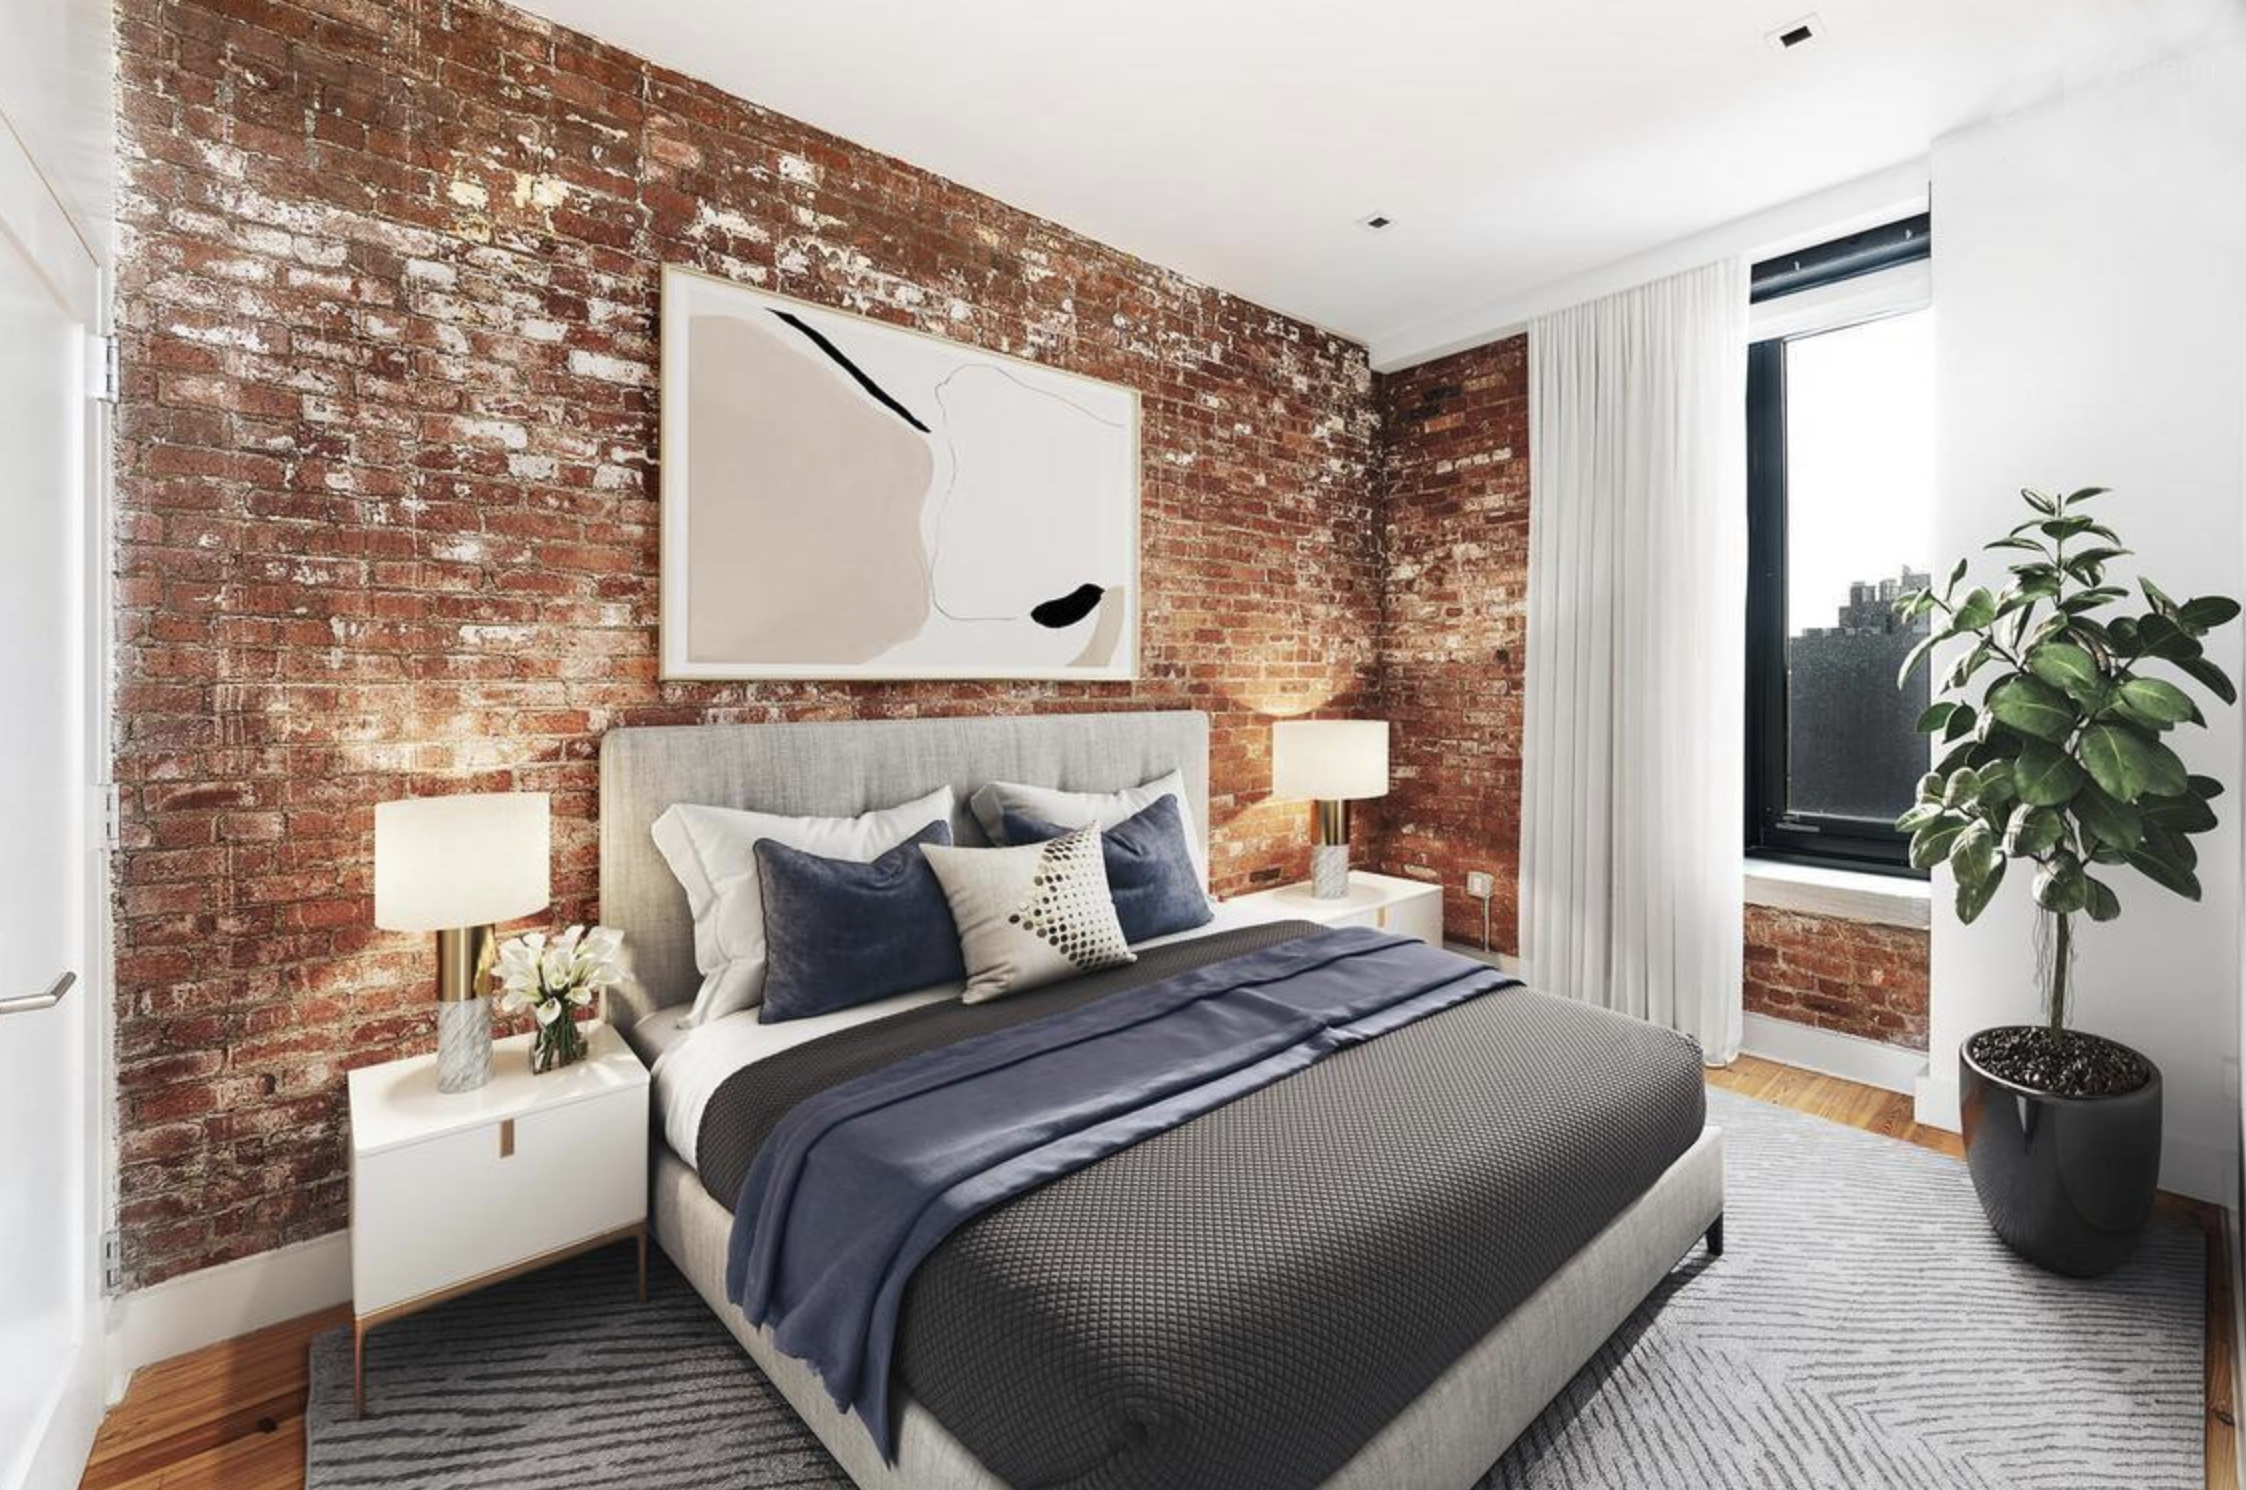 72 Berry St #6A - Williamsburg | Brooklyn    1 Bedroom // 1 Bath In Contract List Price:    $799,995*